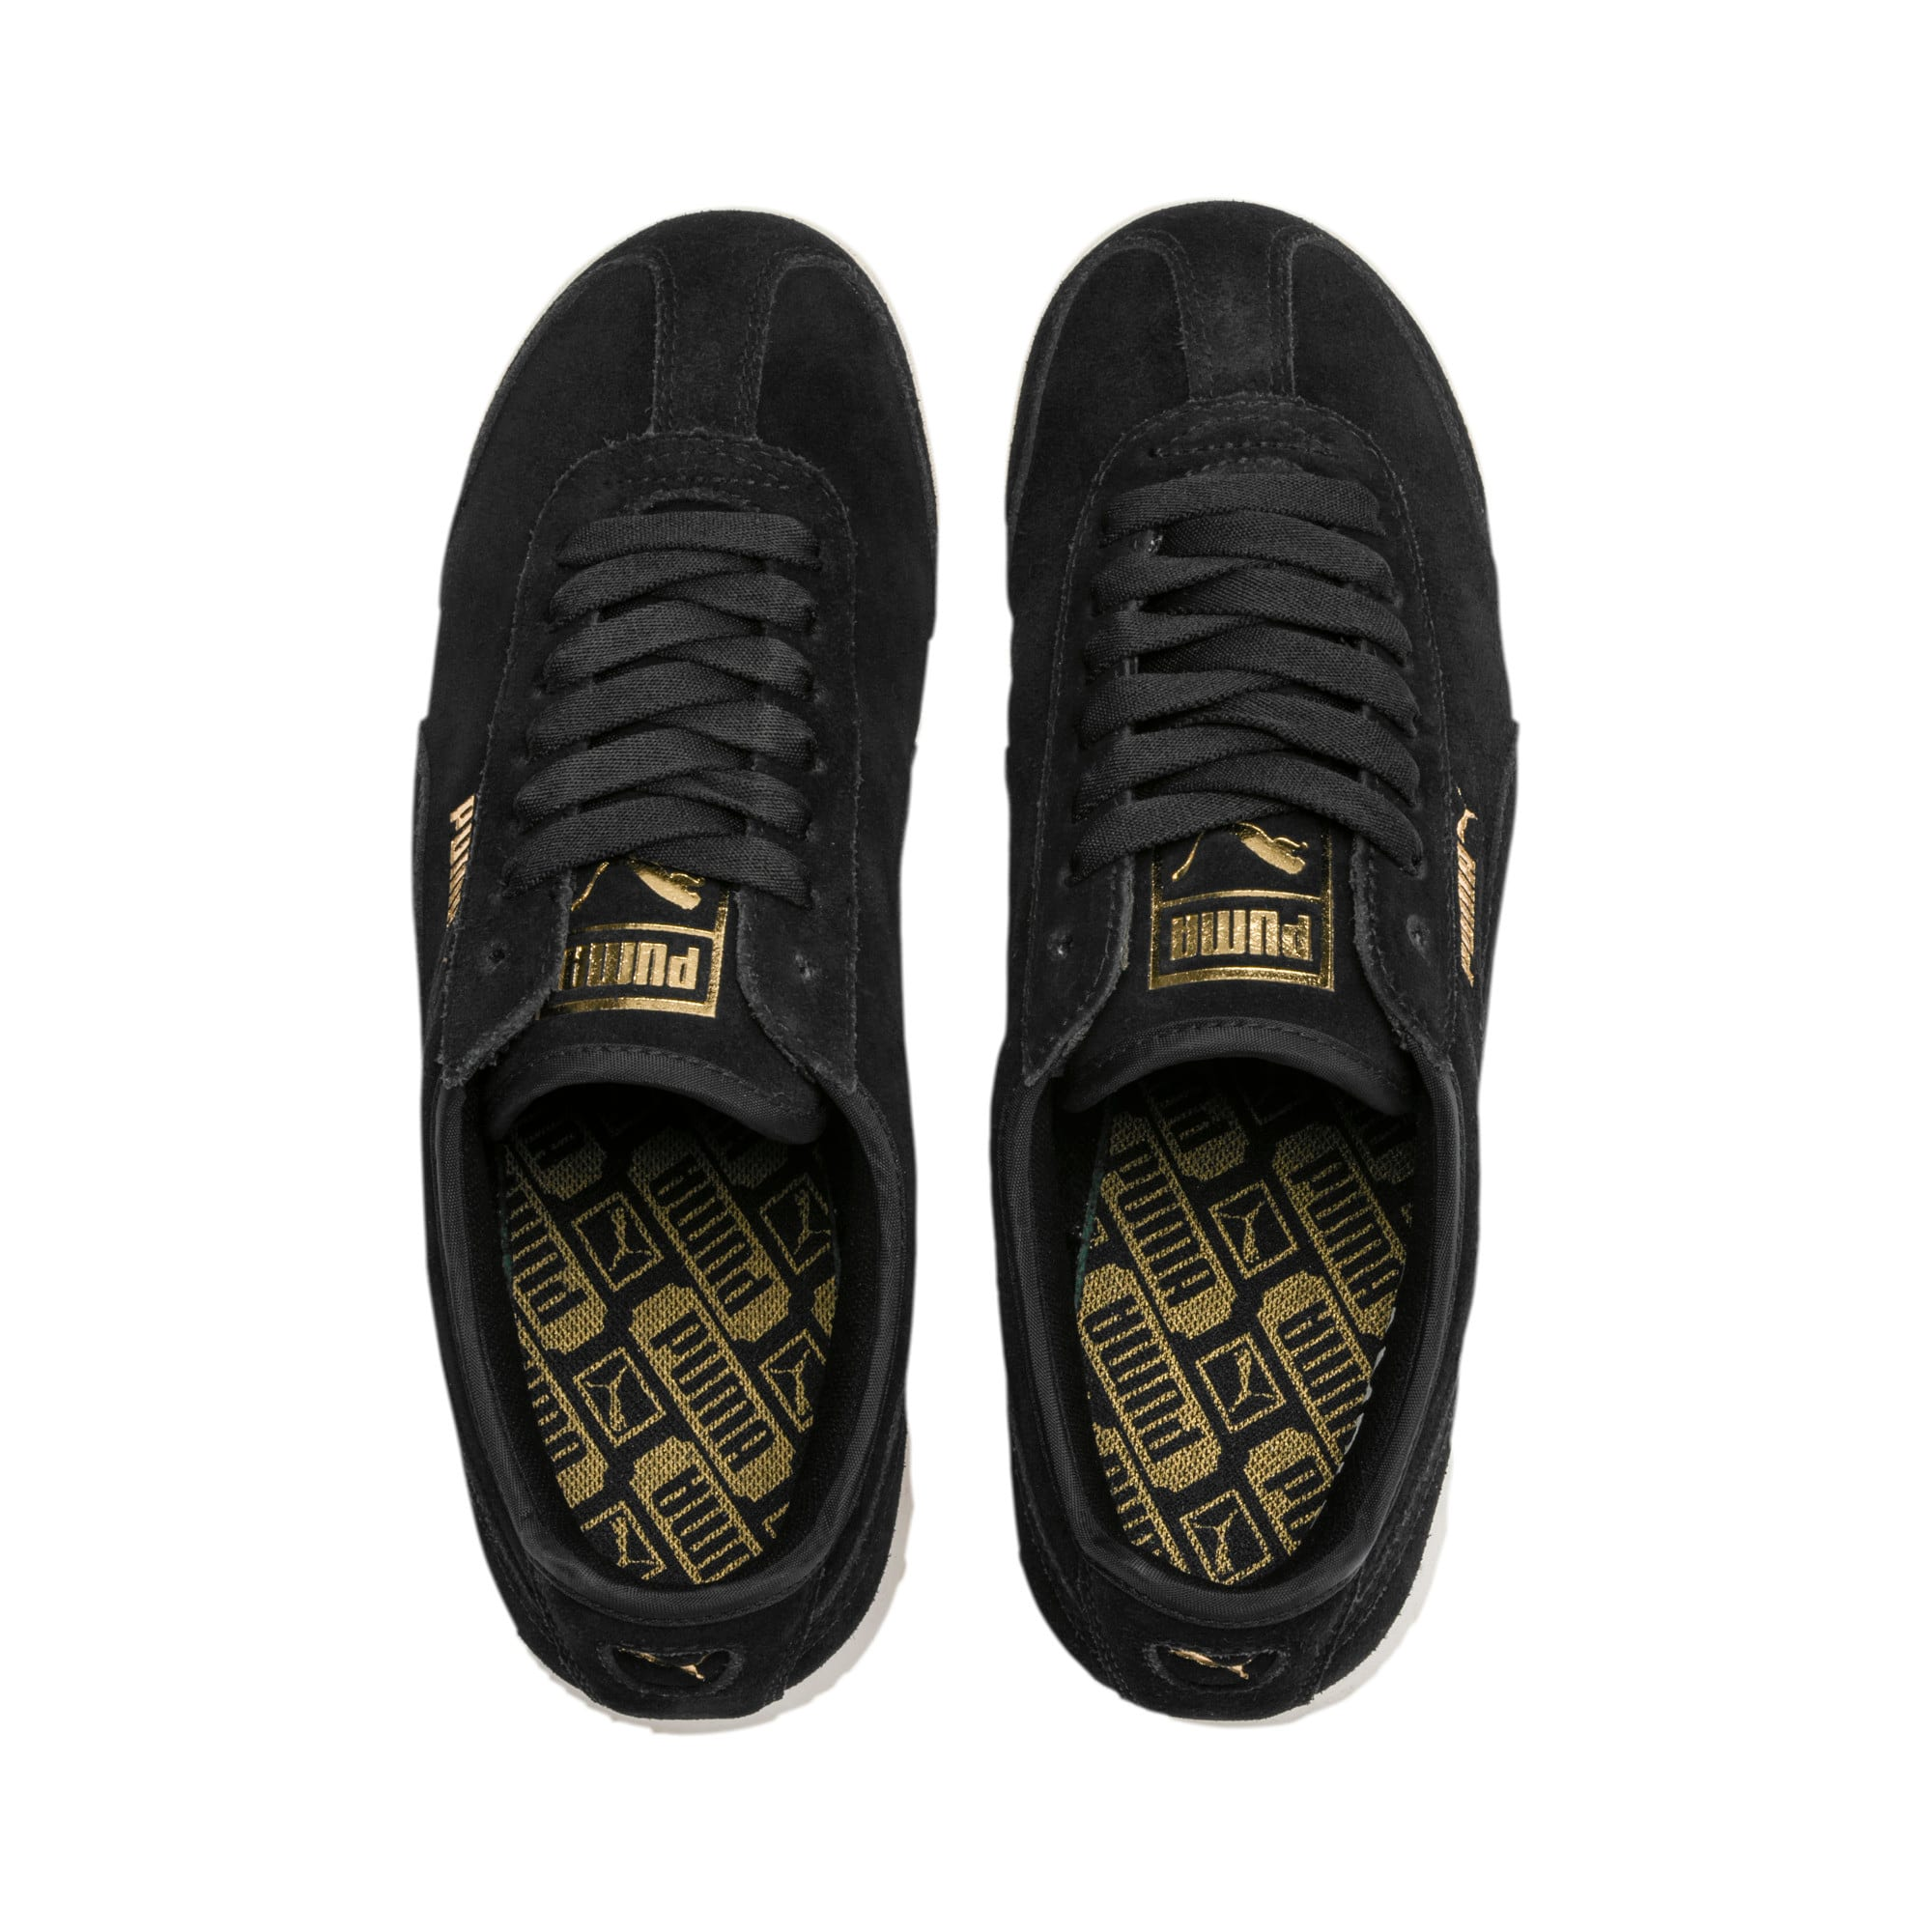 Thumbnail 7 of Roma Amor Suede Women's Trainers, Puma Black-Puma Team Gold, medium